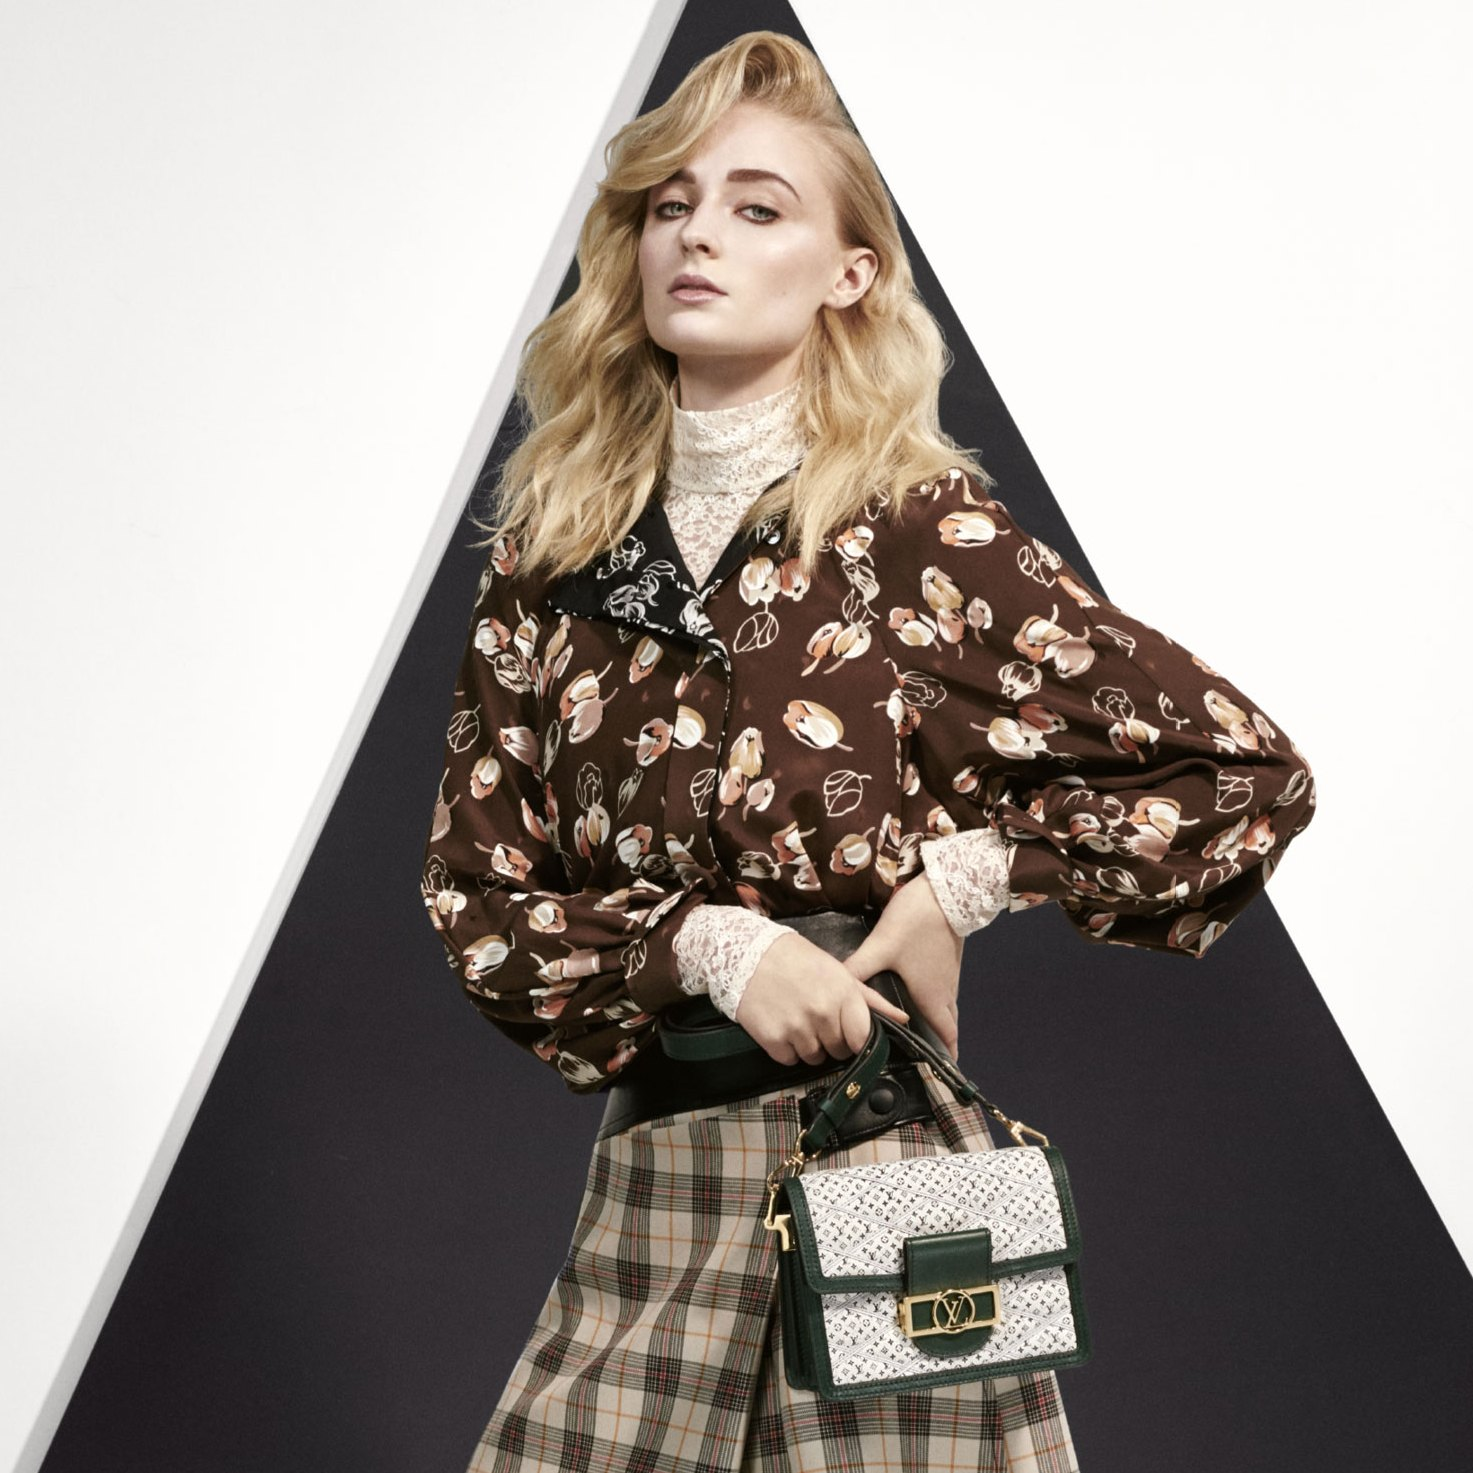 Louis Vuitton's Latest Campaign Features Every Celeb Ever